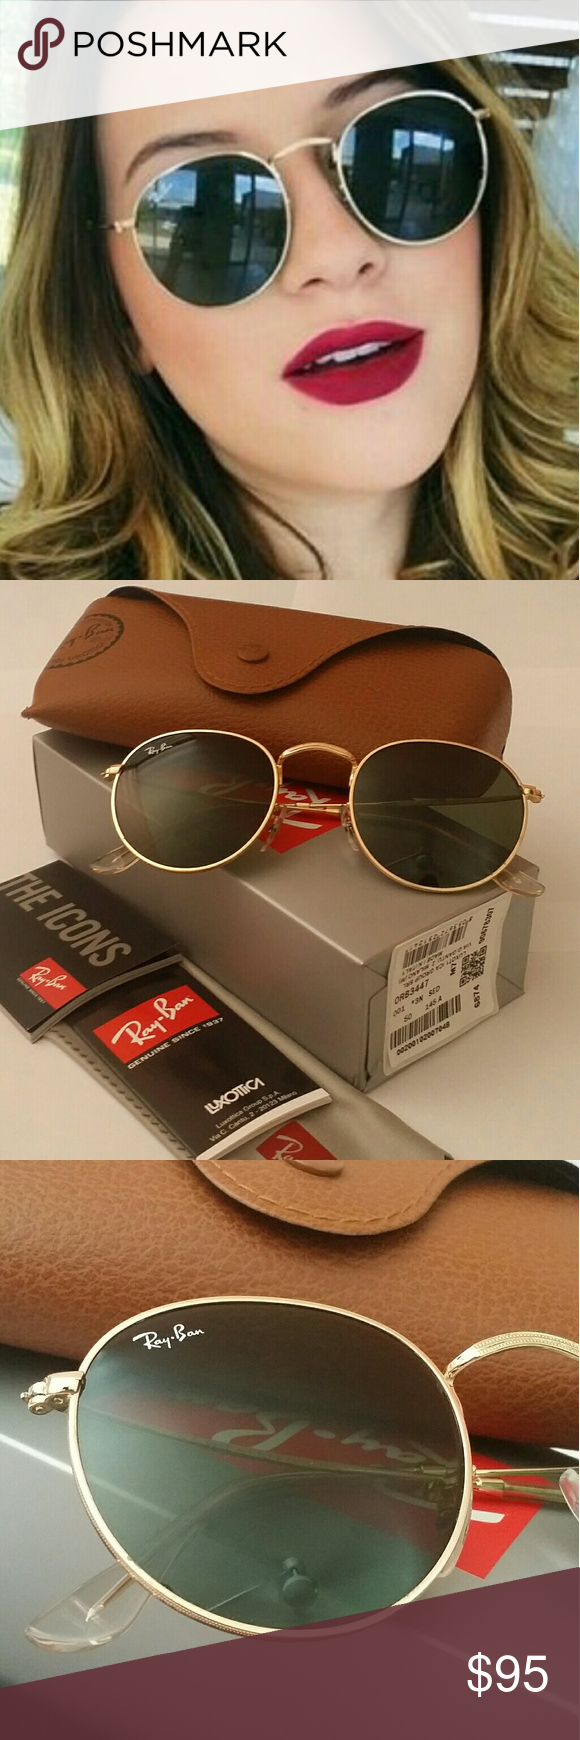 102b31c8a0e 🚩SALE🚩💯% AUTHENTIC RAY-BAN ROUND CLASSIC LENS 🚫Low ball offers